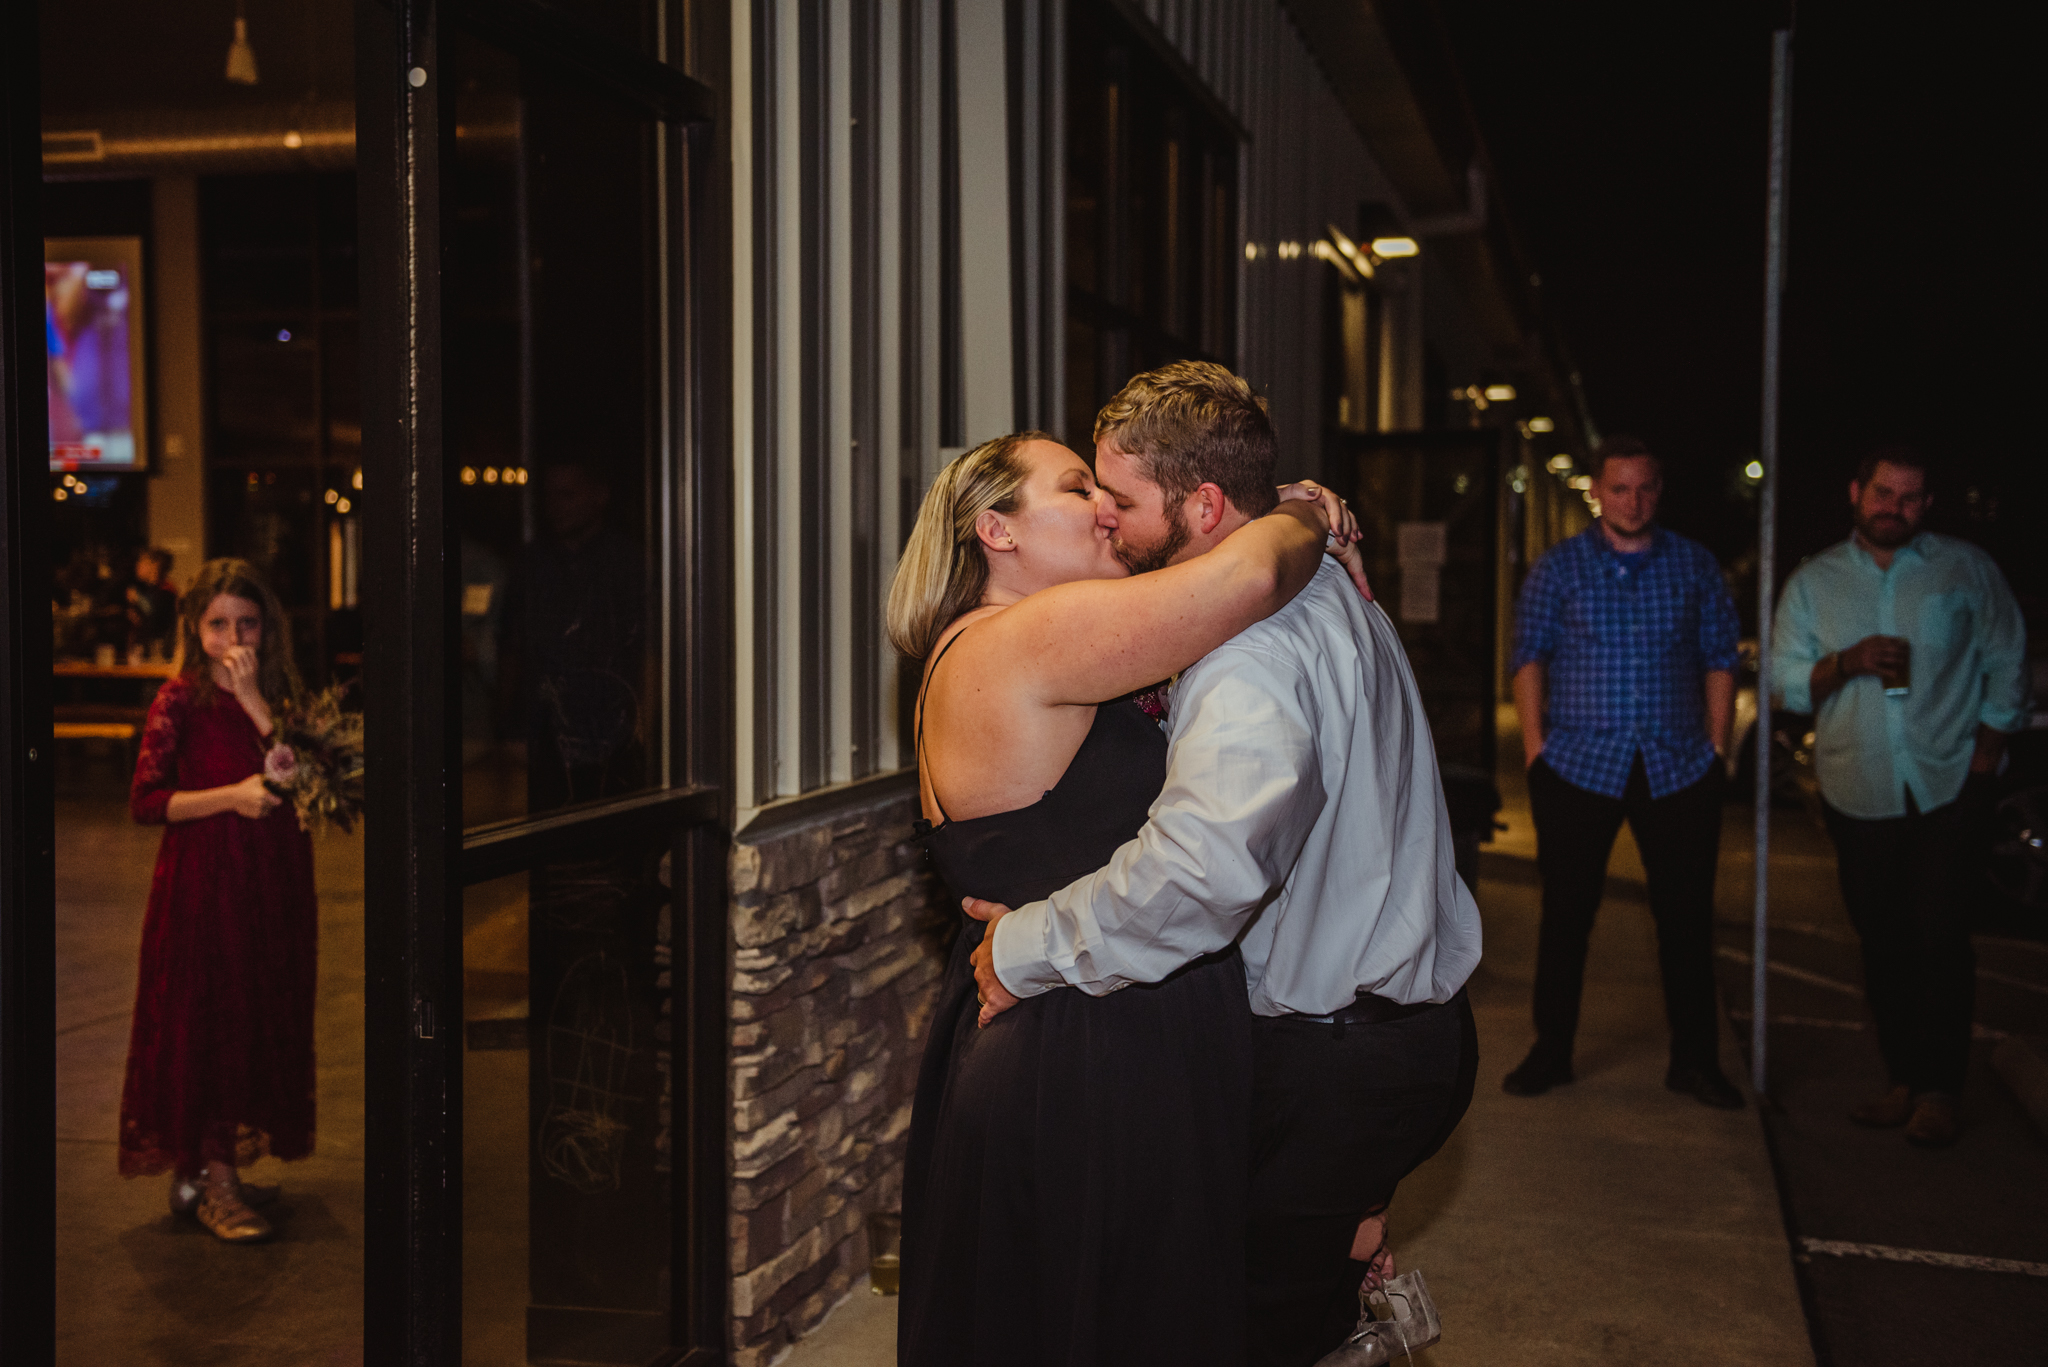 bride-and-groom-do-their-first-dance-outside-with-their-family-watching.jpg